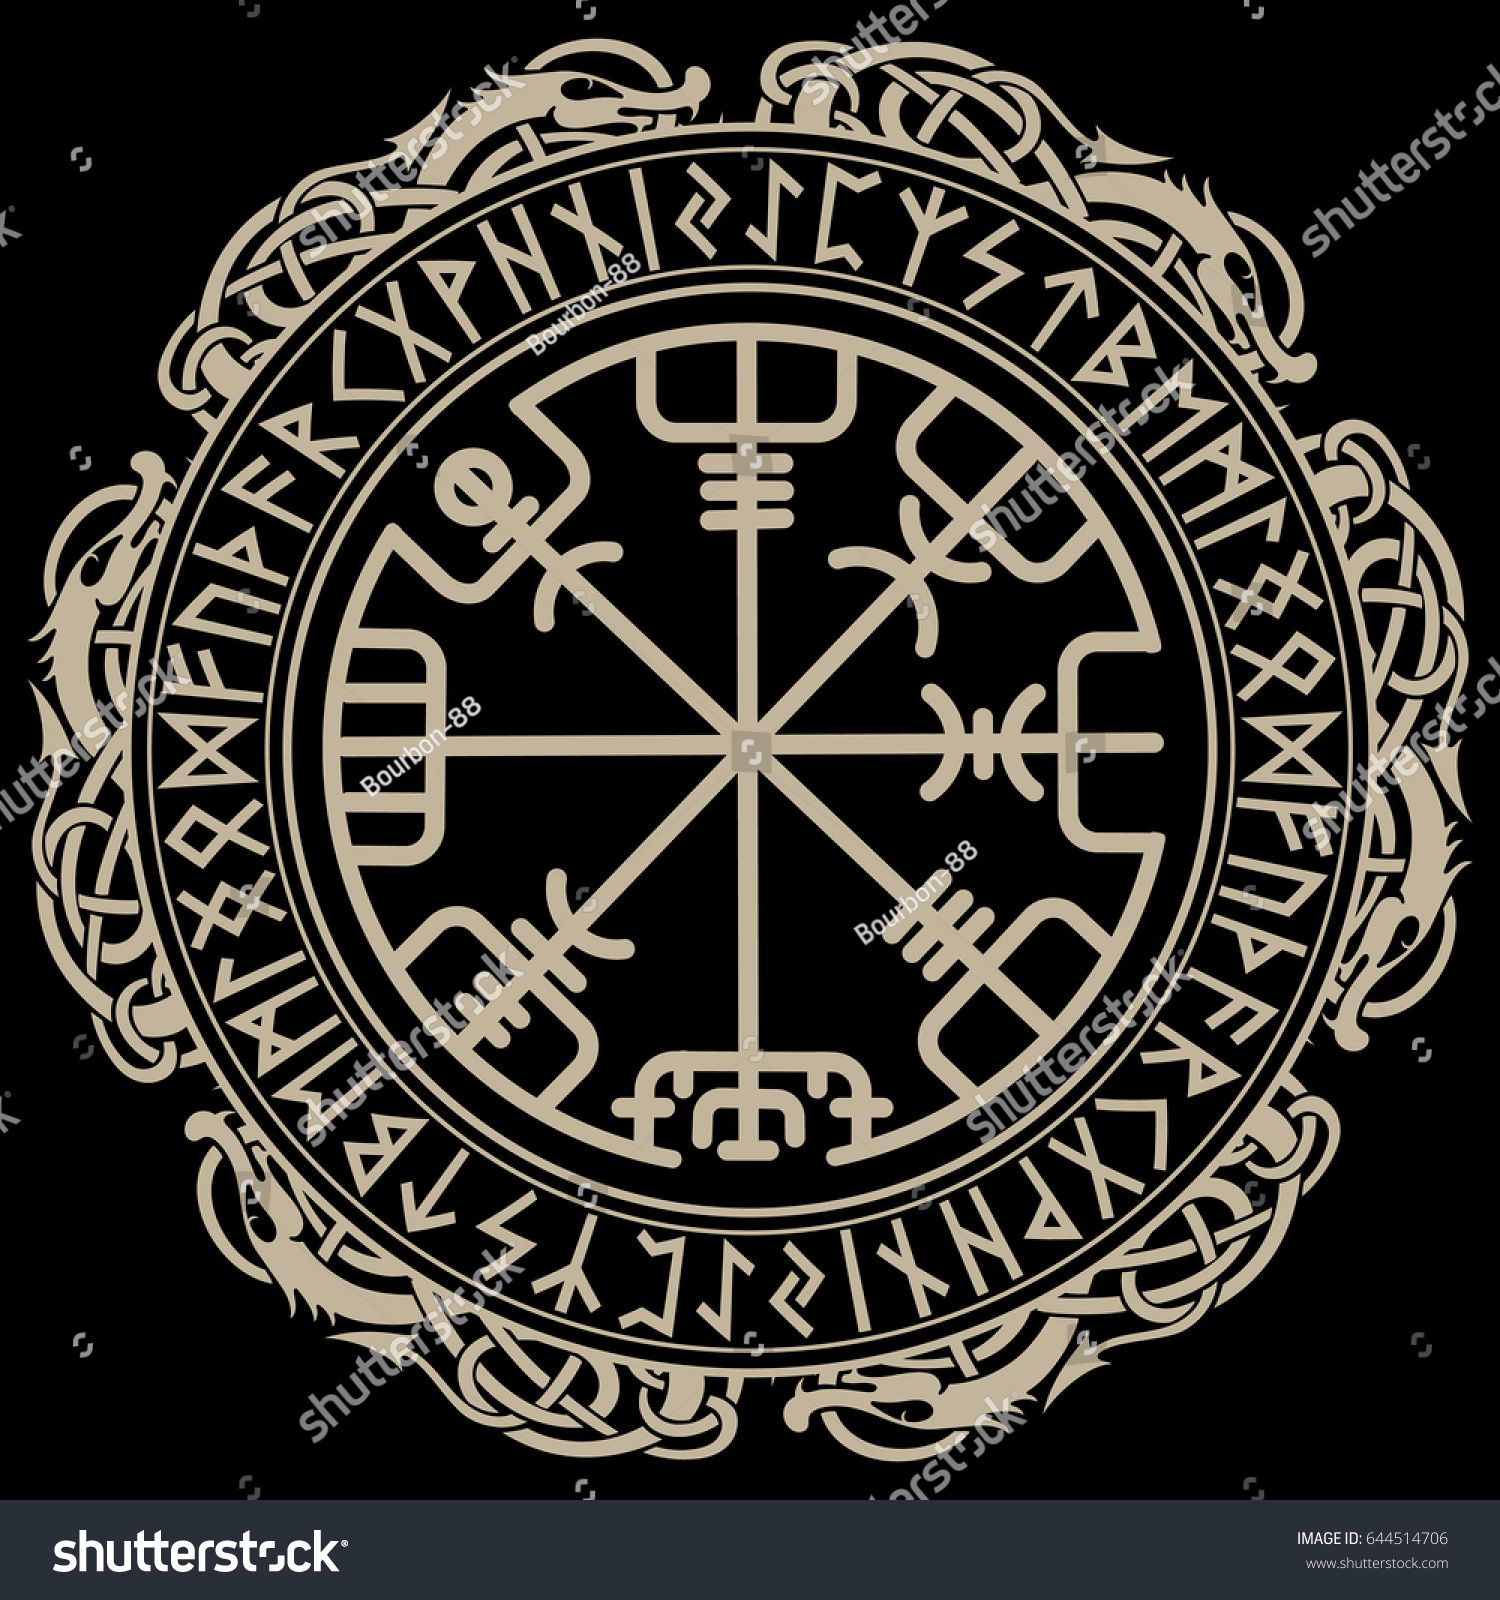 Viking Design Magical Runic Compass Vegvisir In The Circle Of